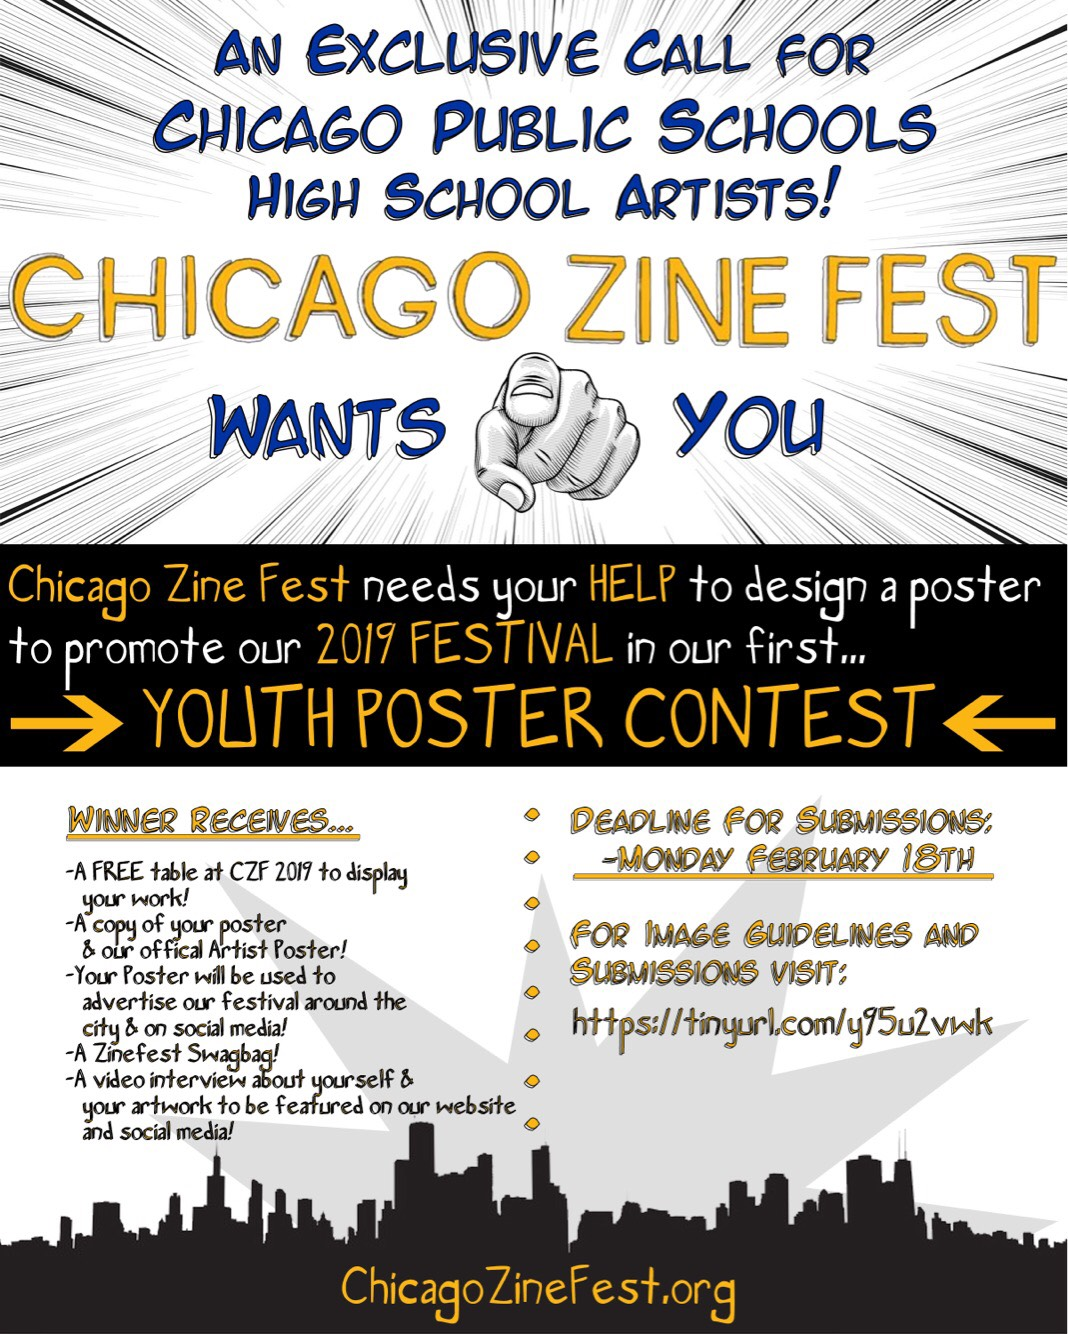 Announcing the CZF Youth Poster Contest!